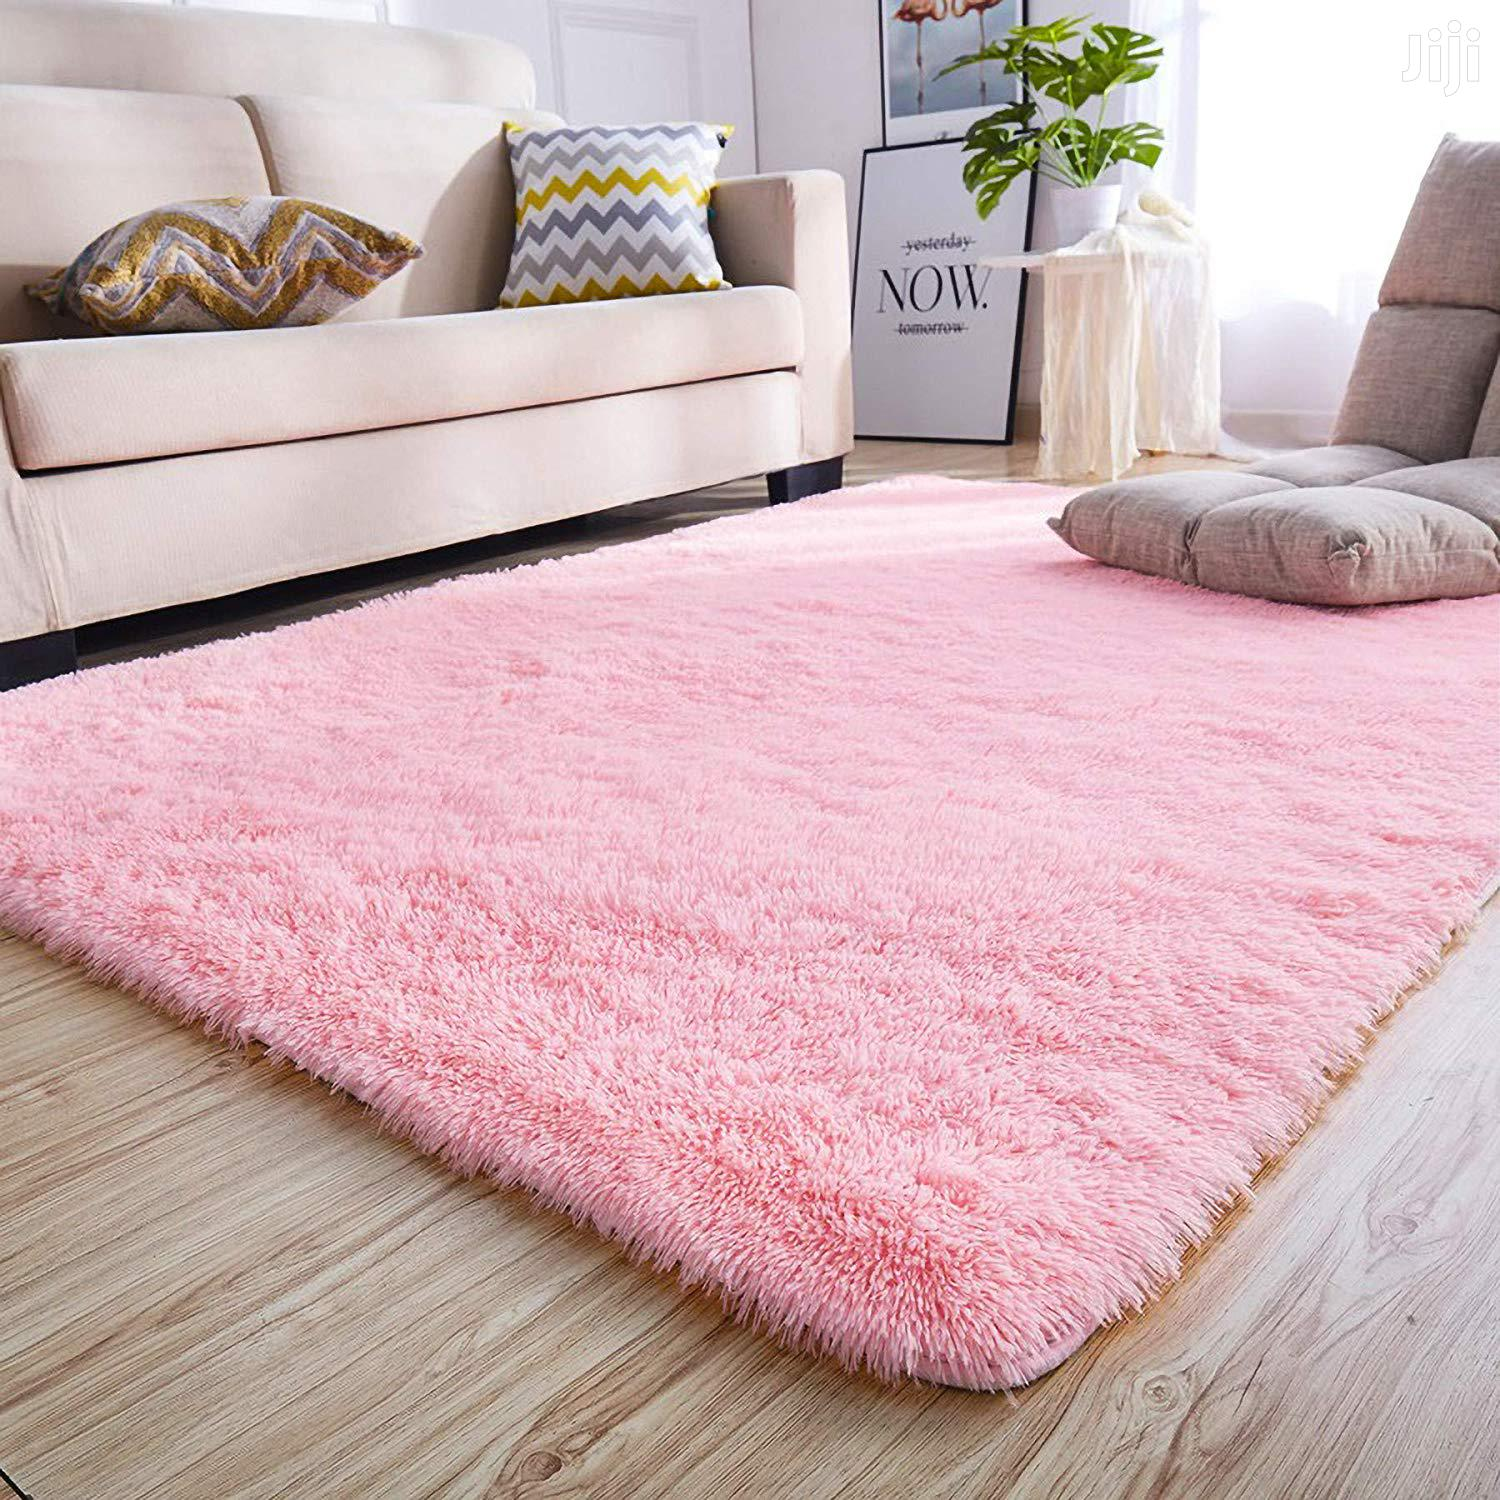 Carpet Cleaning Specialists.Low Price Guaranteed.Free Quote | Cleaning Services for sale in Kilimani, Nairobi, Kenya